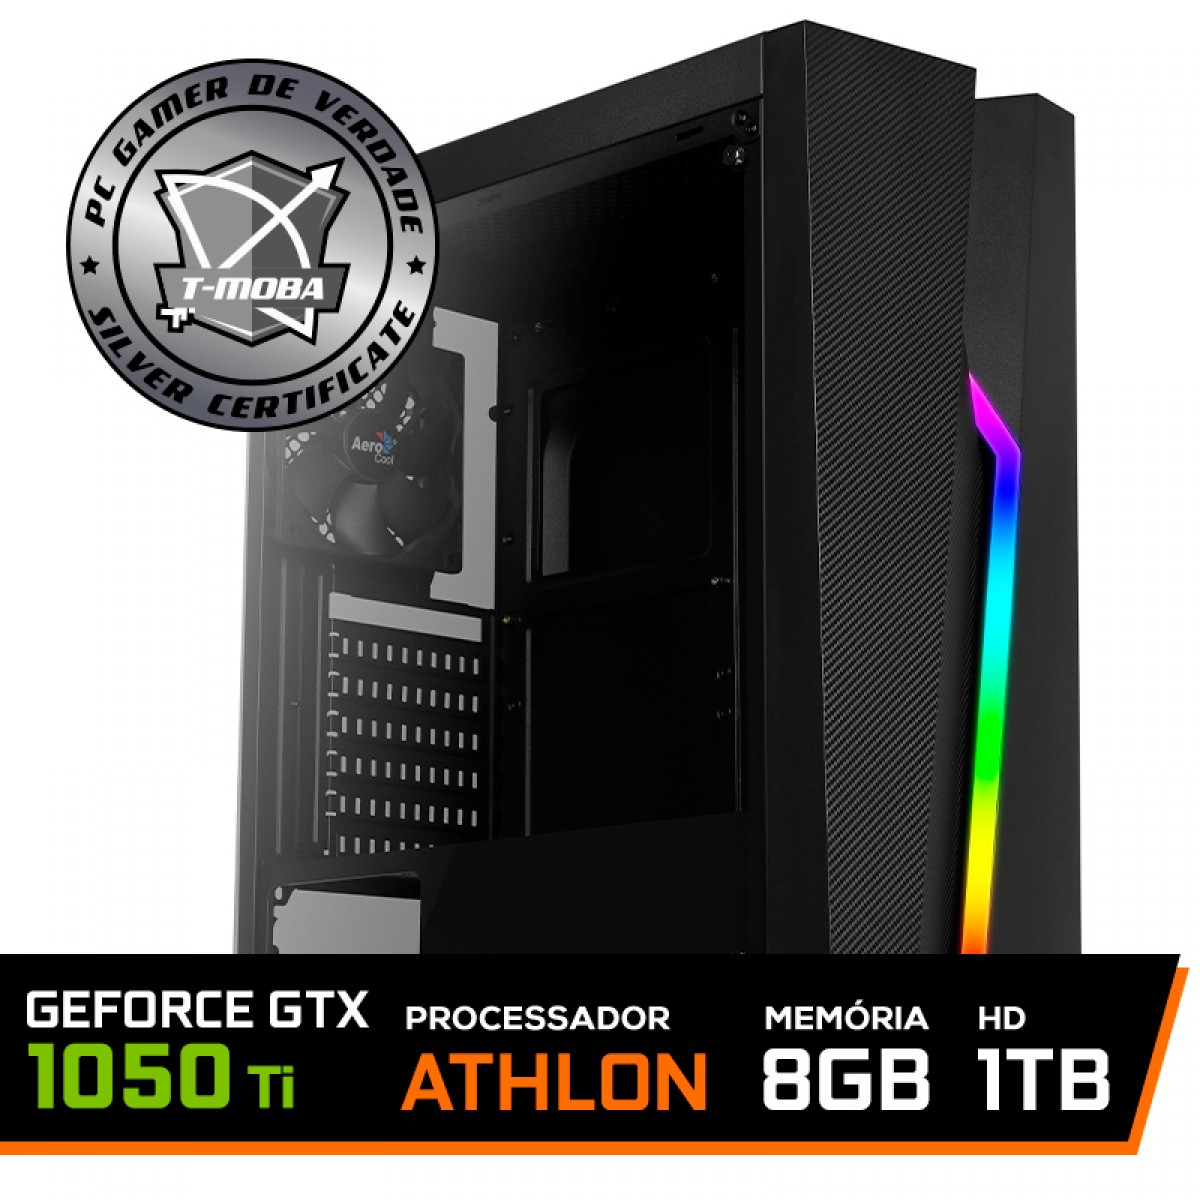 Pc Gamer T-Moba Gladiator LVL-1 AMD Athlon 3000G / Geforce Gtx 1050 Ti / DDR4 8GB / HD 1TB